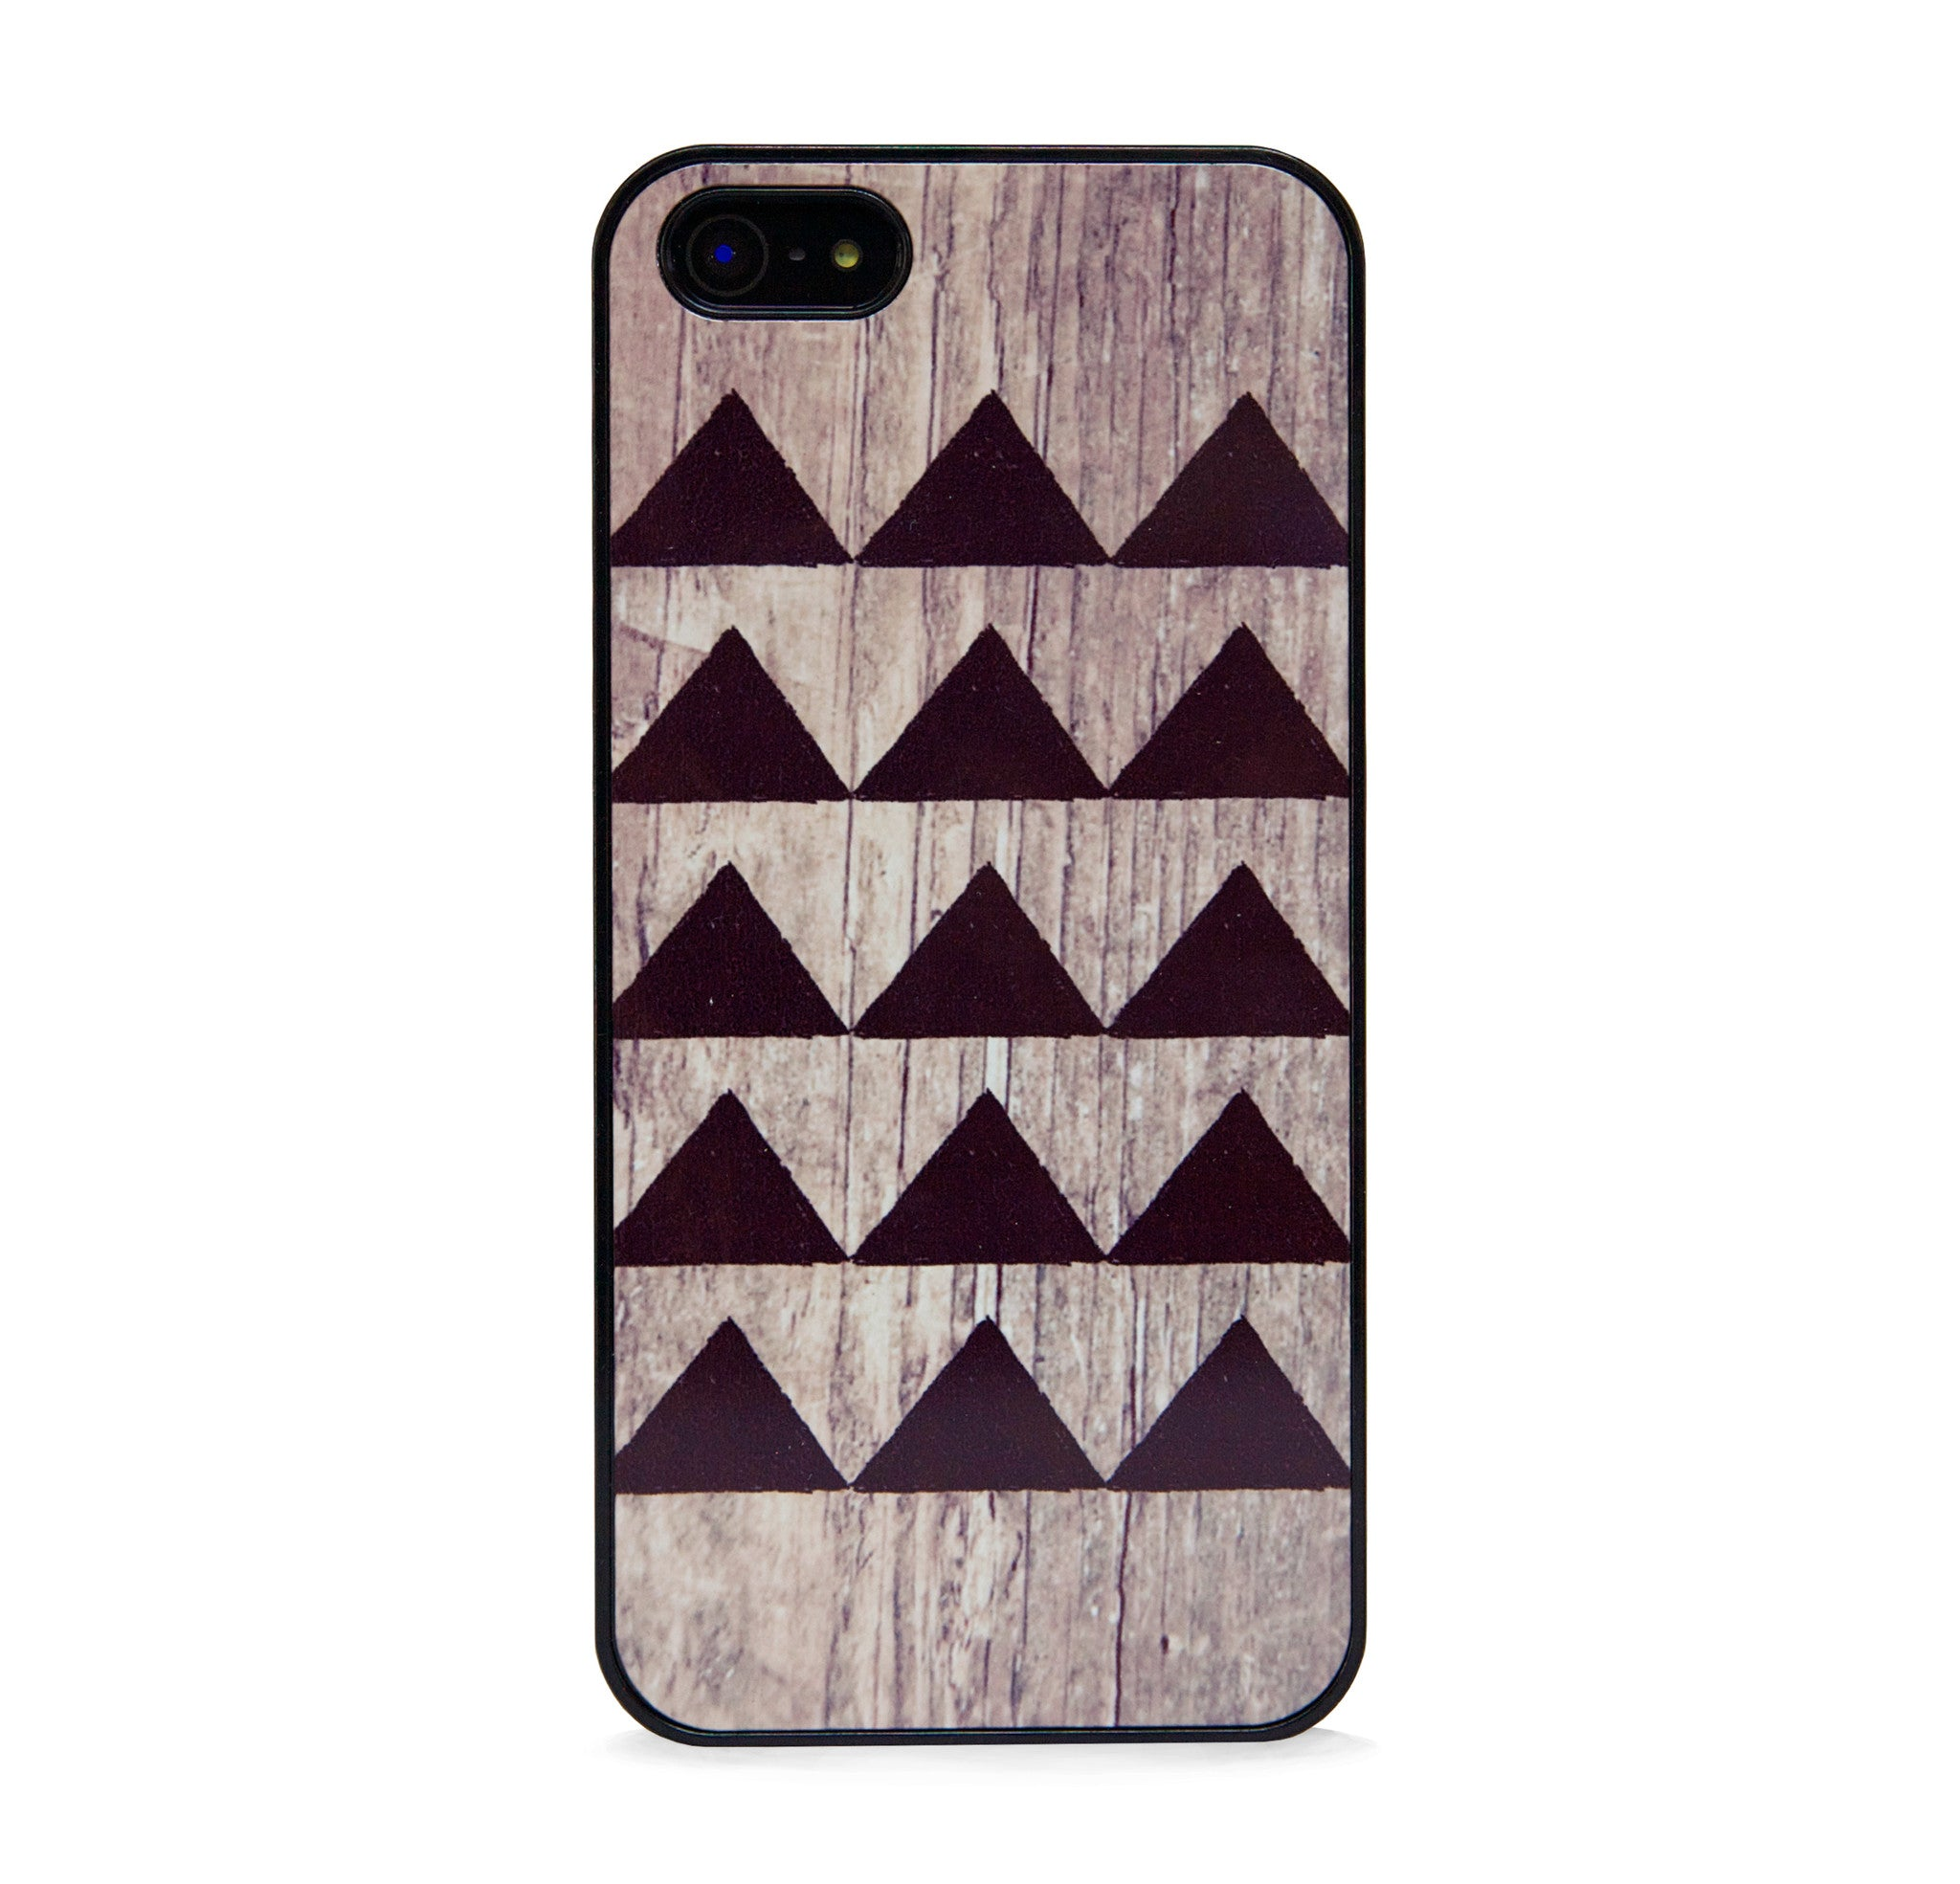 GEO WOOD TRIANGLE BLACK FOR IPHONE 5/5S, IPHONE SE